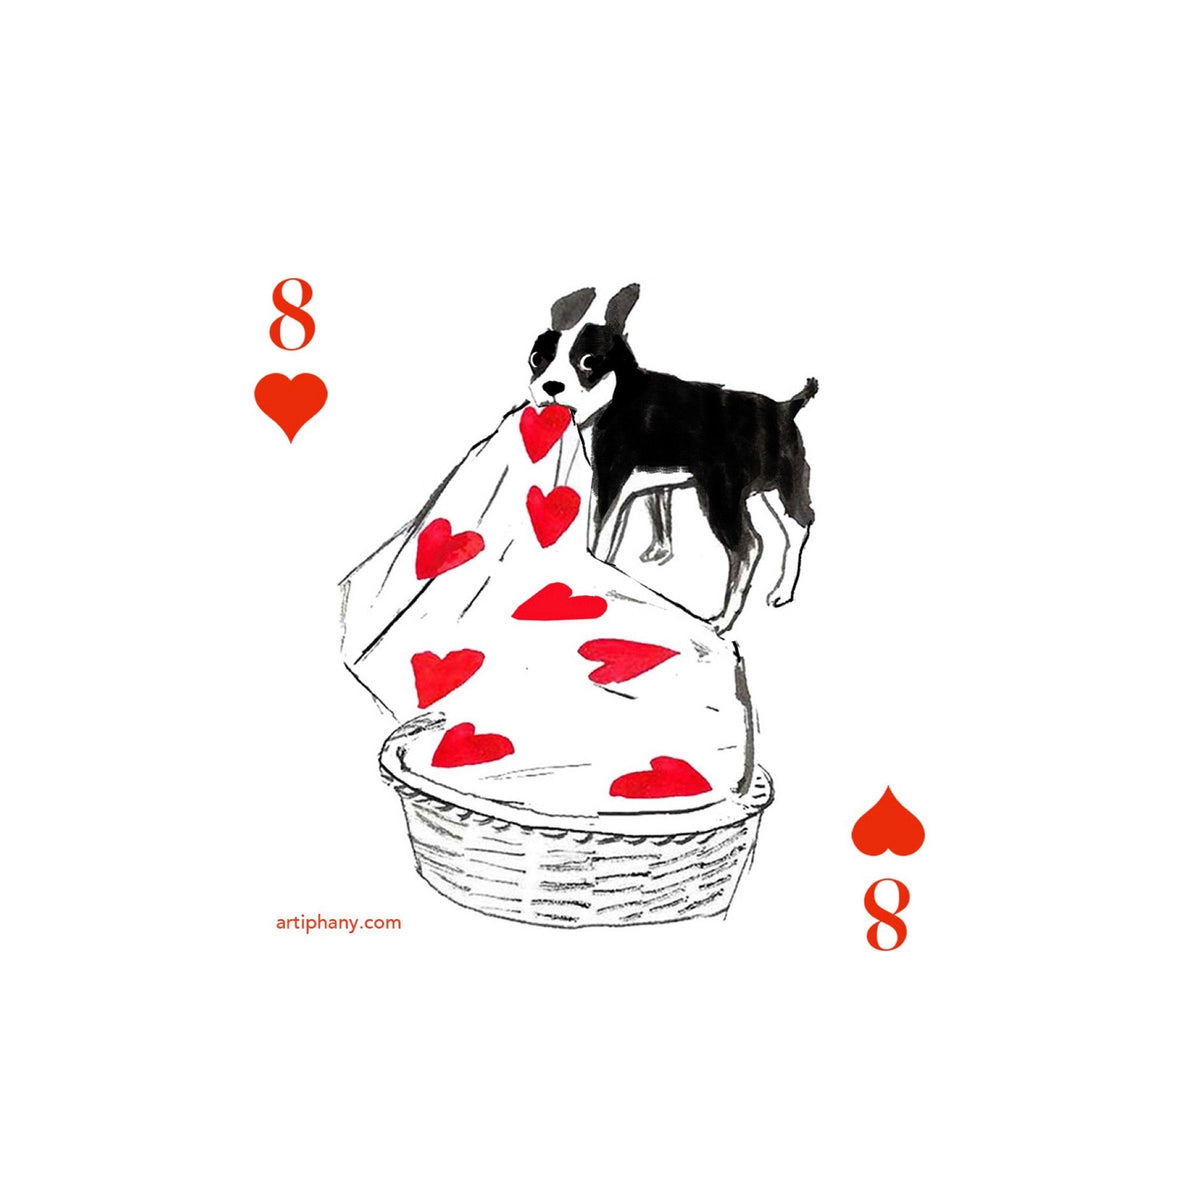 Pack of Dogs Playing Cards Gift Items Artiphany